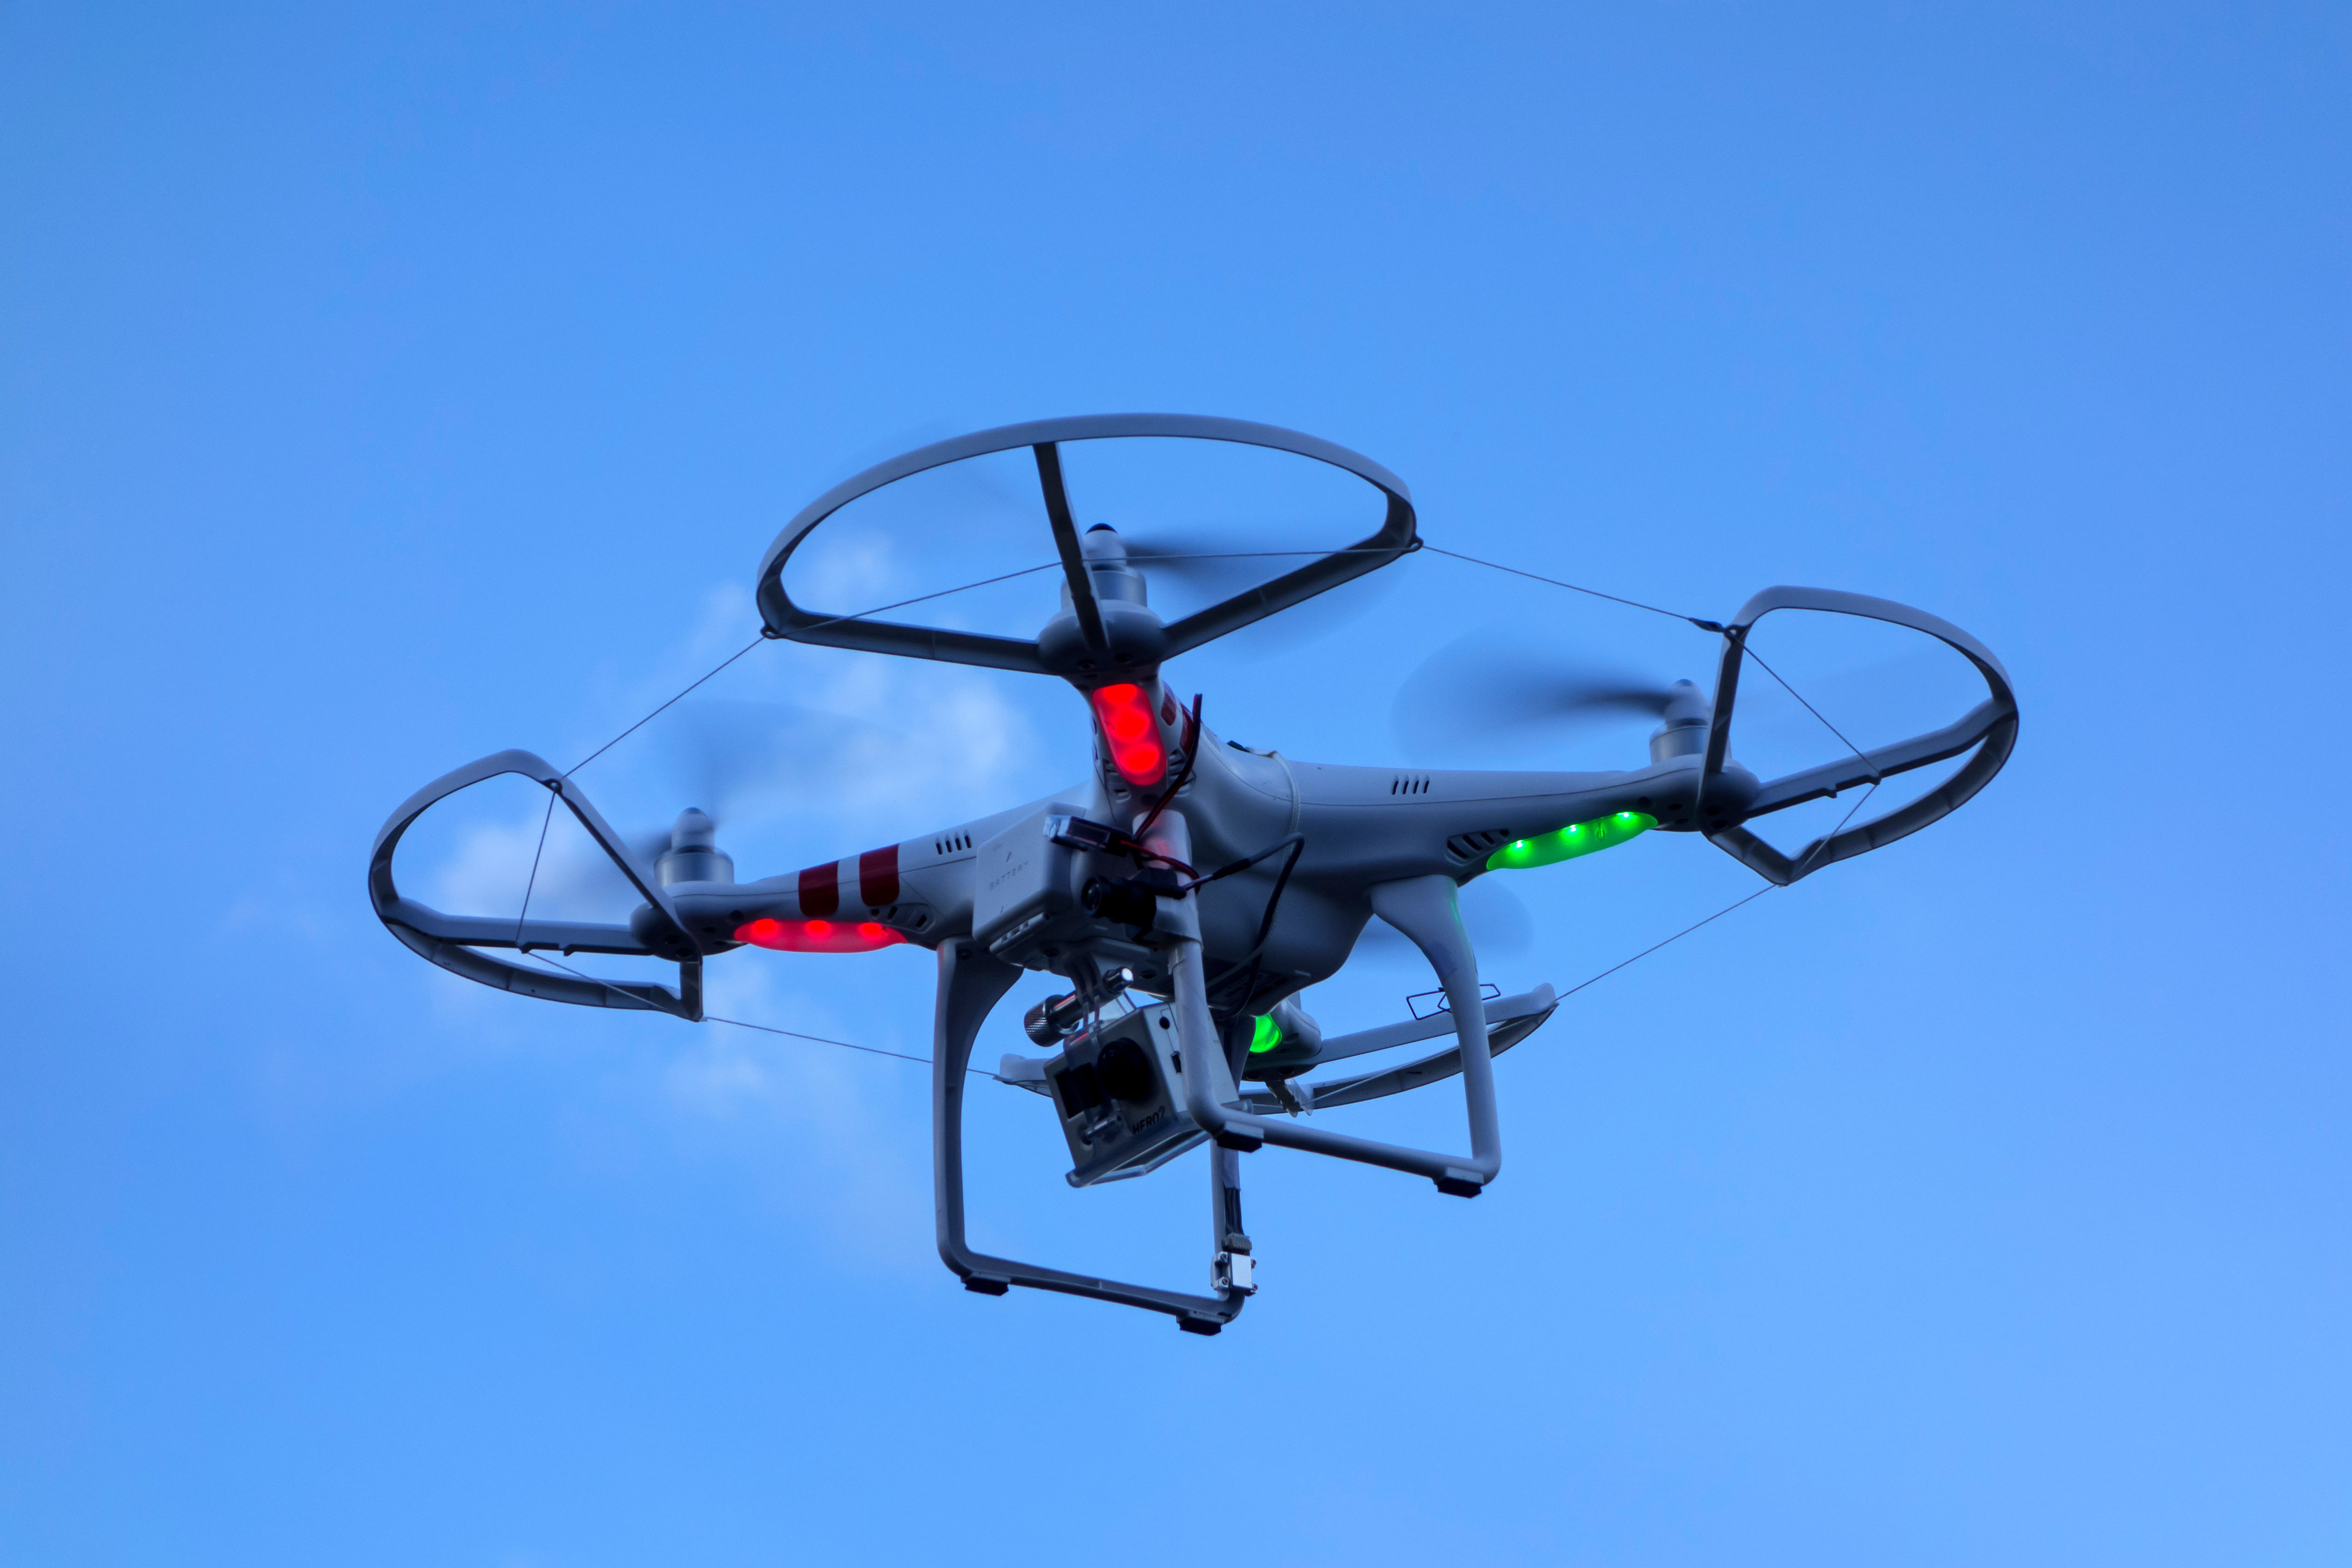 Miniature drone / unmanned aerial vehicle / UAV equipped with camera in flight against blue sky with clouds